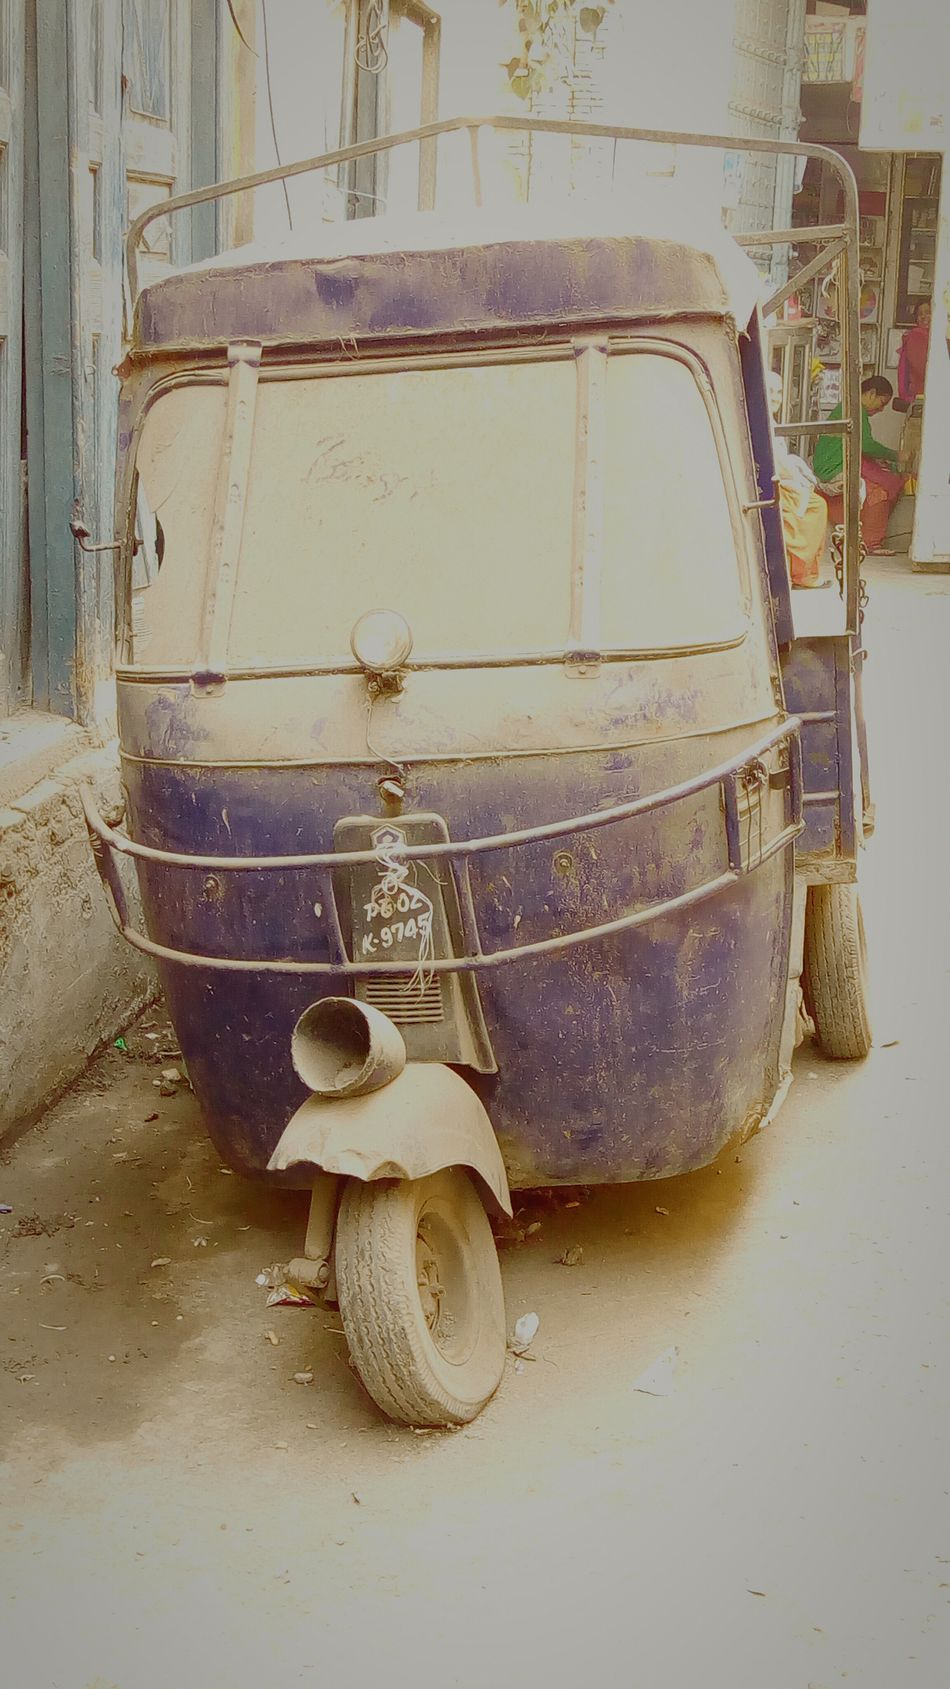 Land Vehicle Car Mode Of Transport Transportation No People Day Outdoors Close-up A Day Without Life